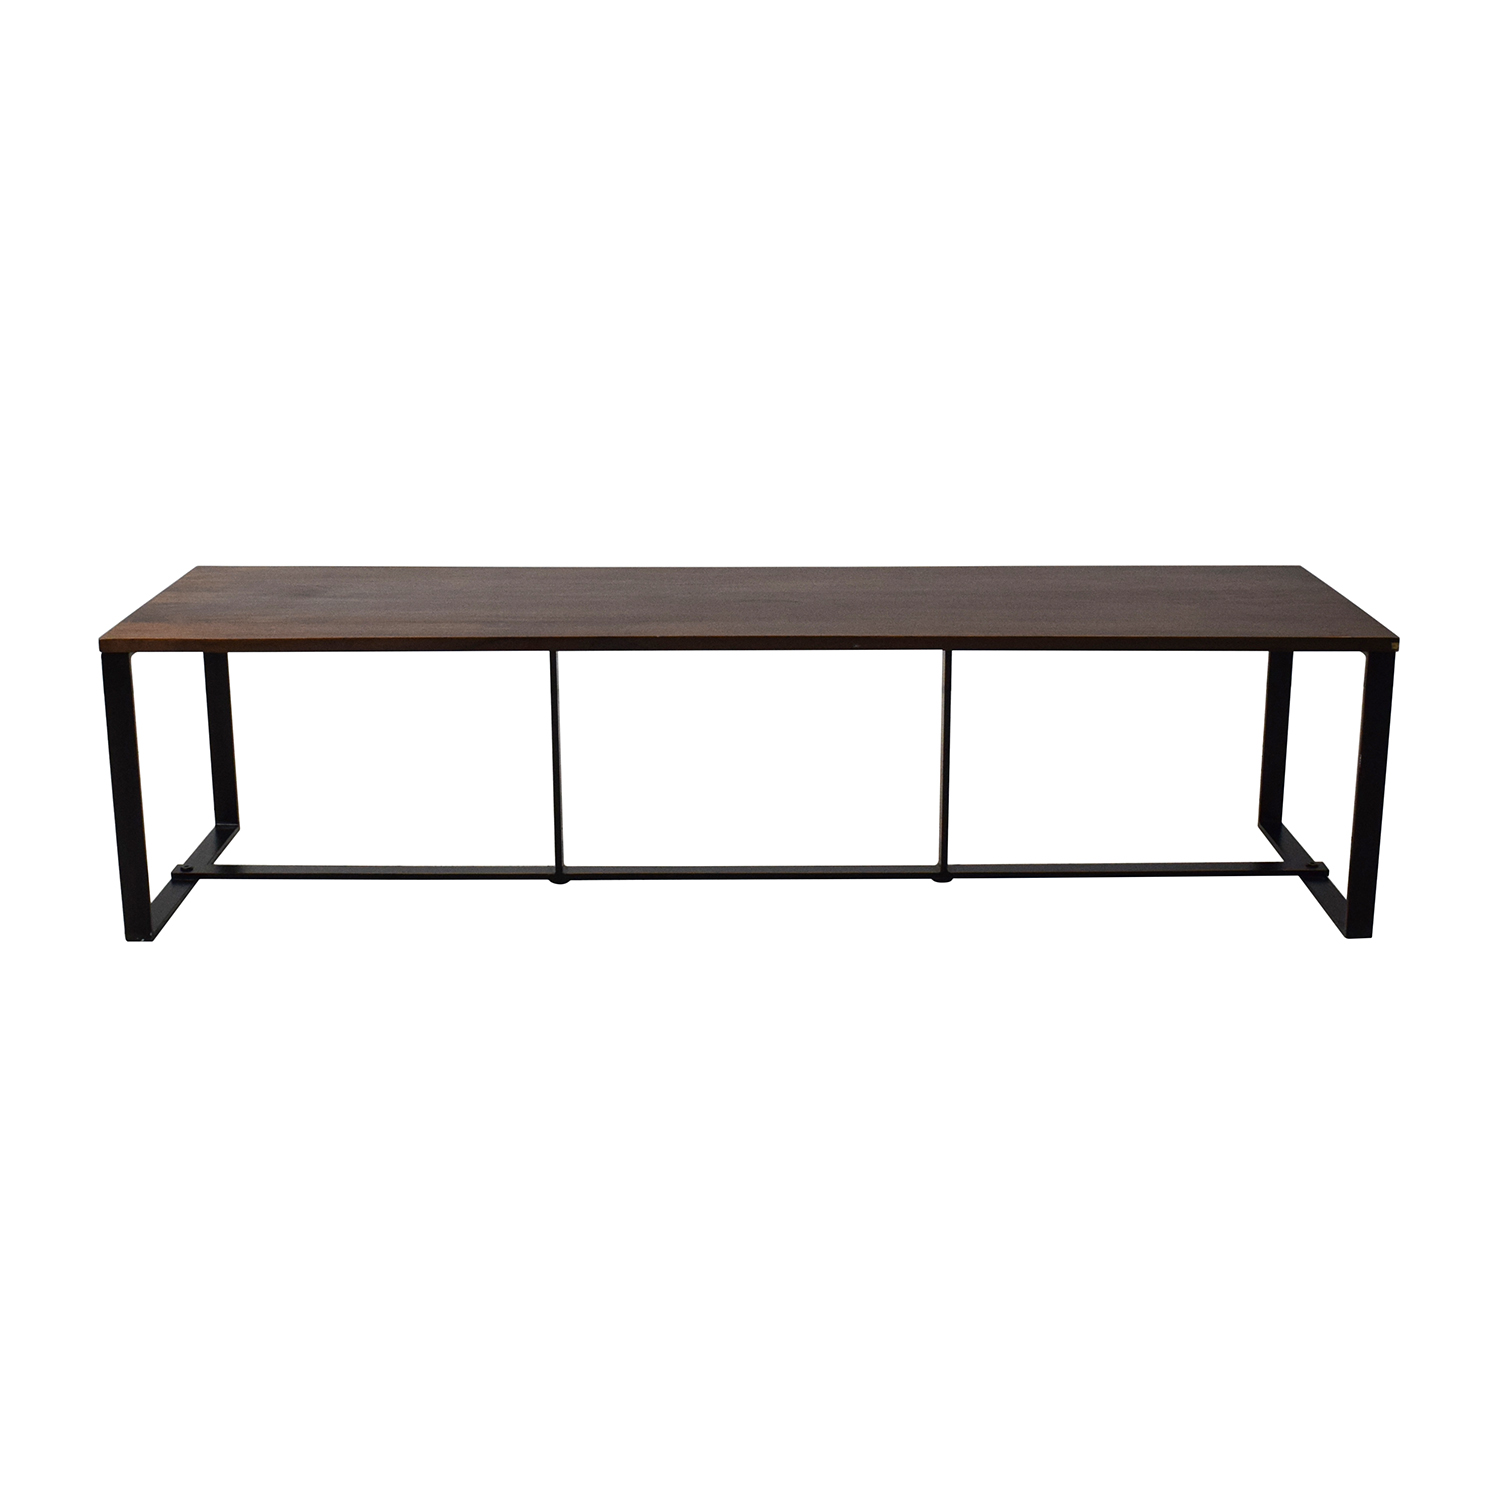 Cb2 Coffee Table.77 Off Cb2 Cb2 Coffee Table Tables